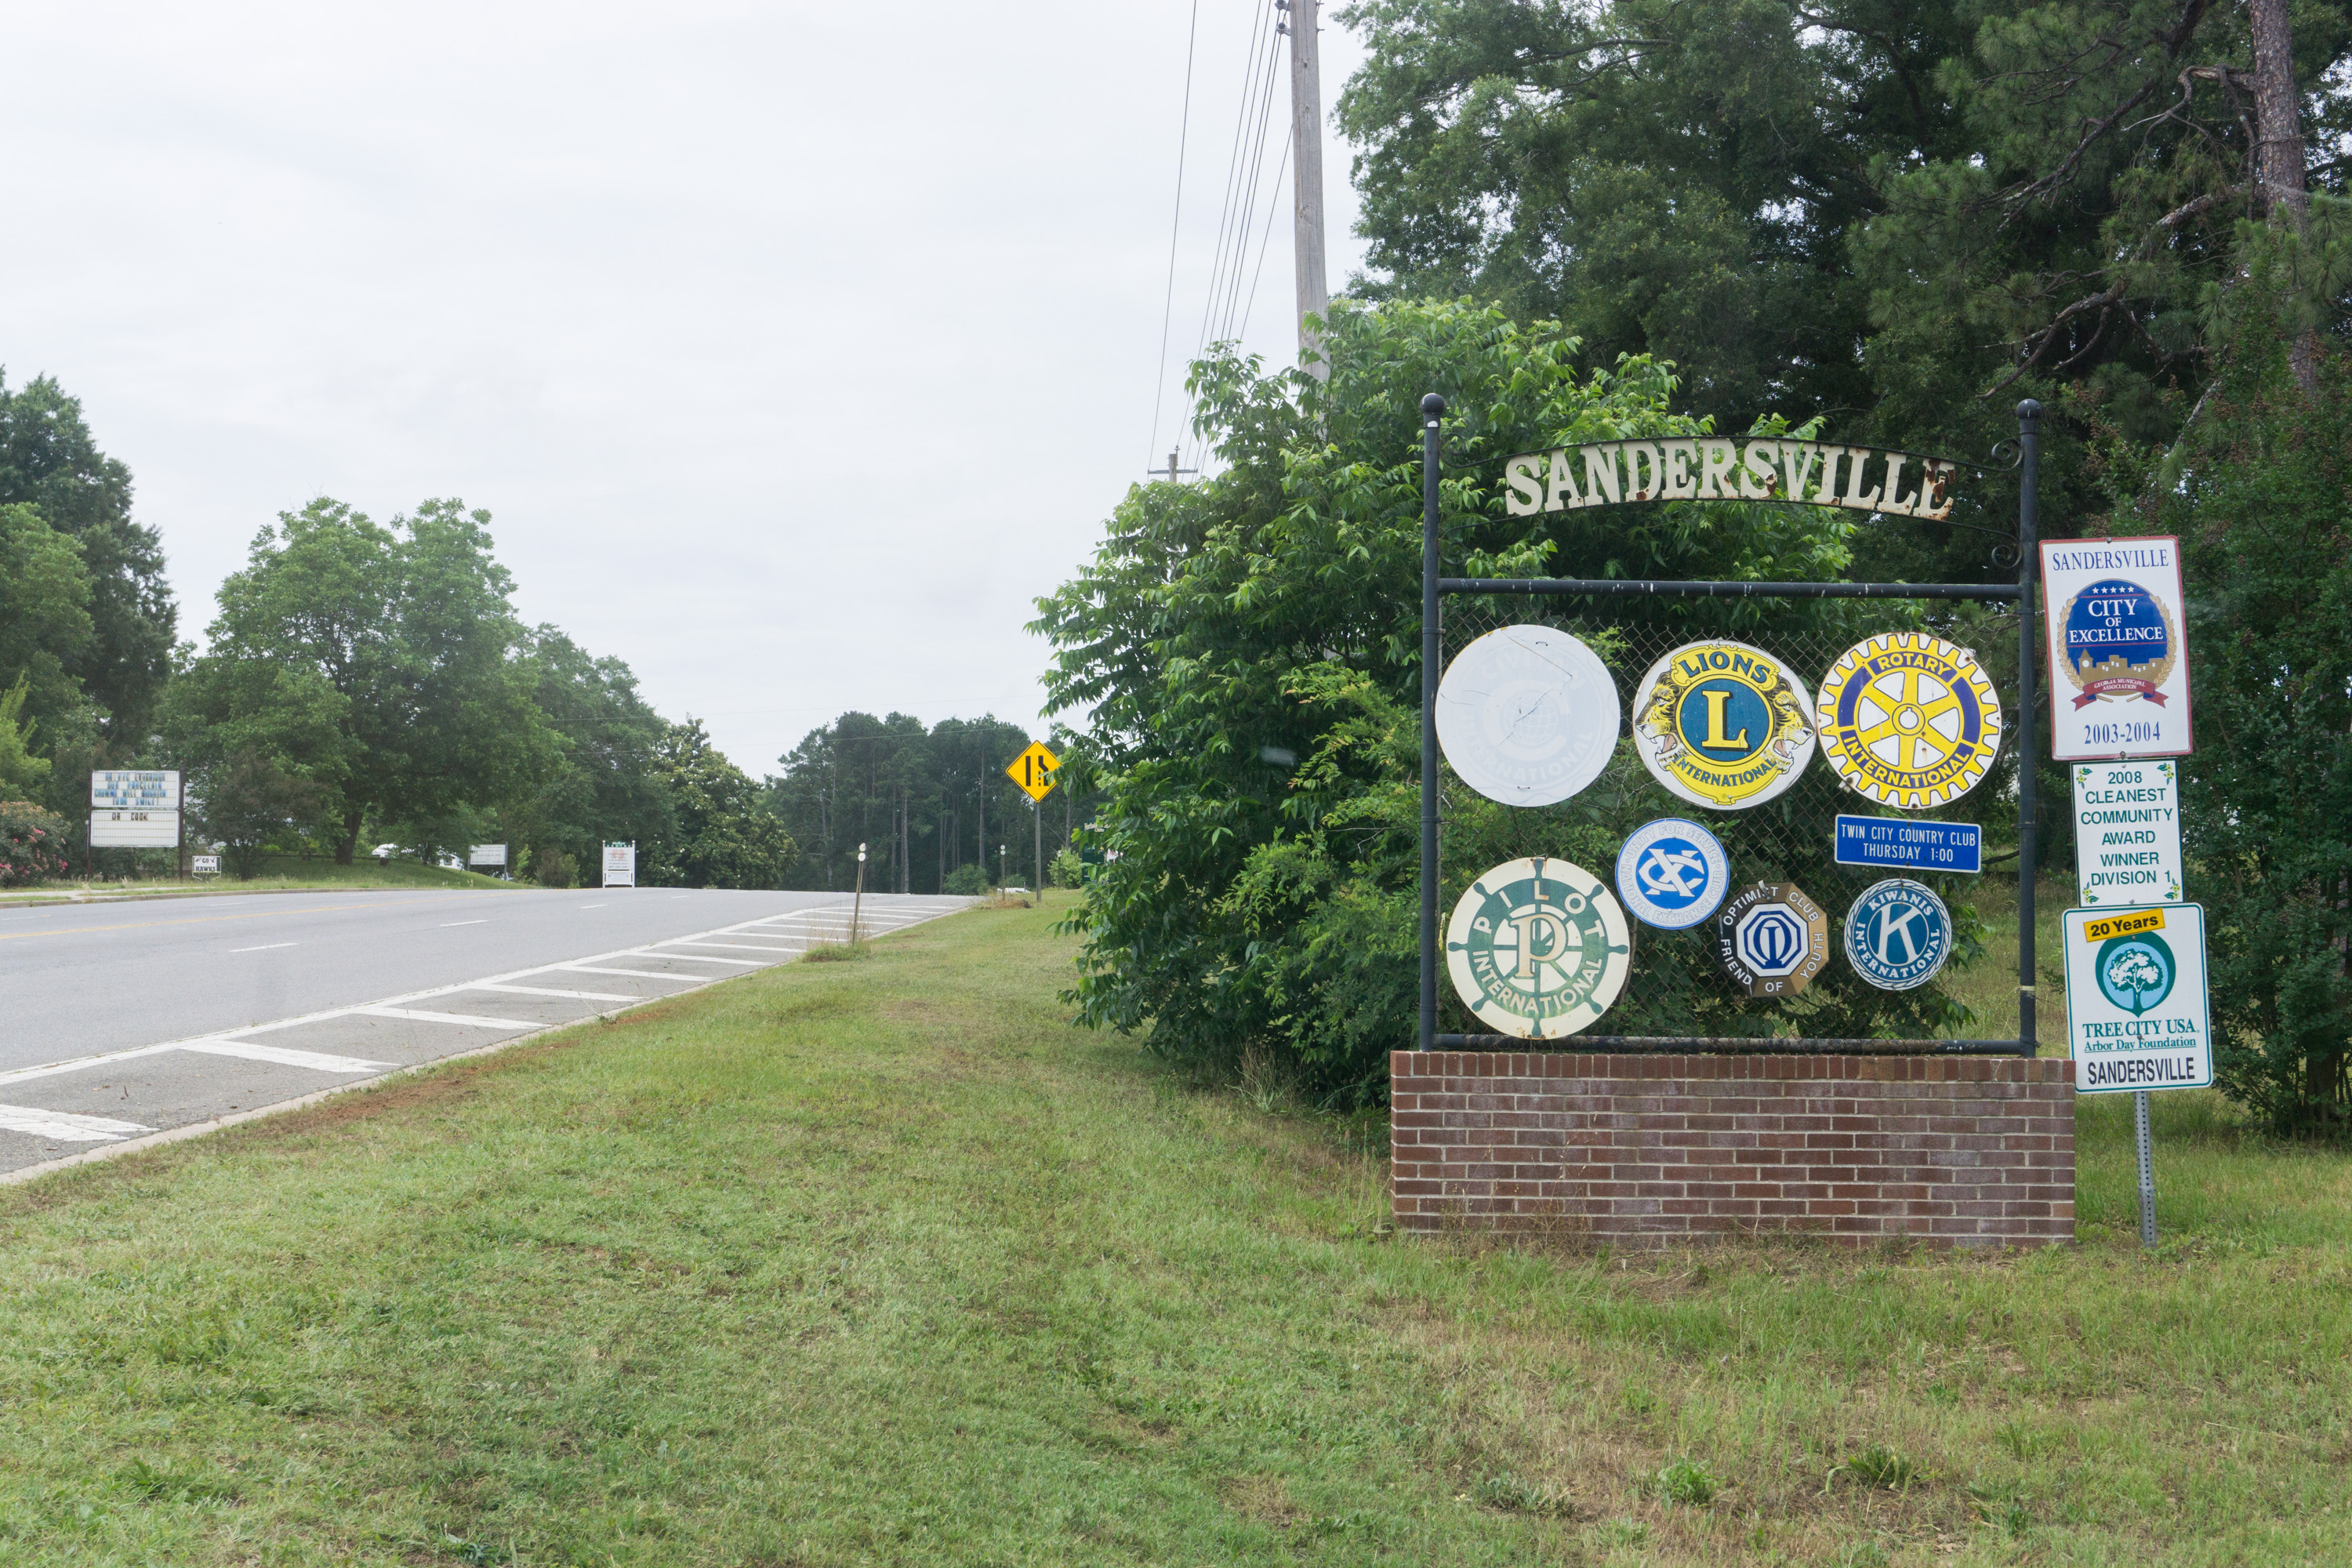 Washington_Sandersville_entrysign